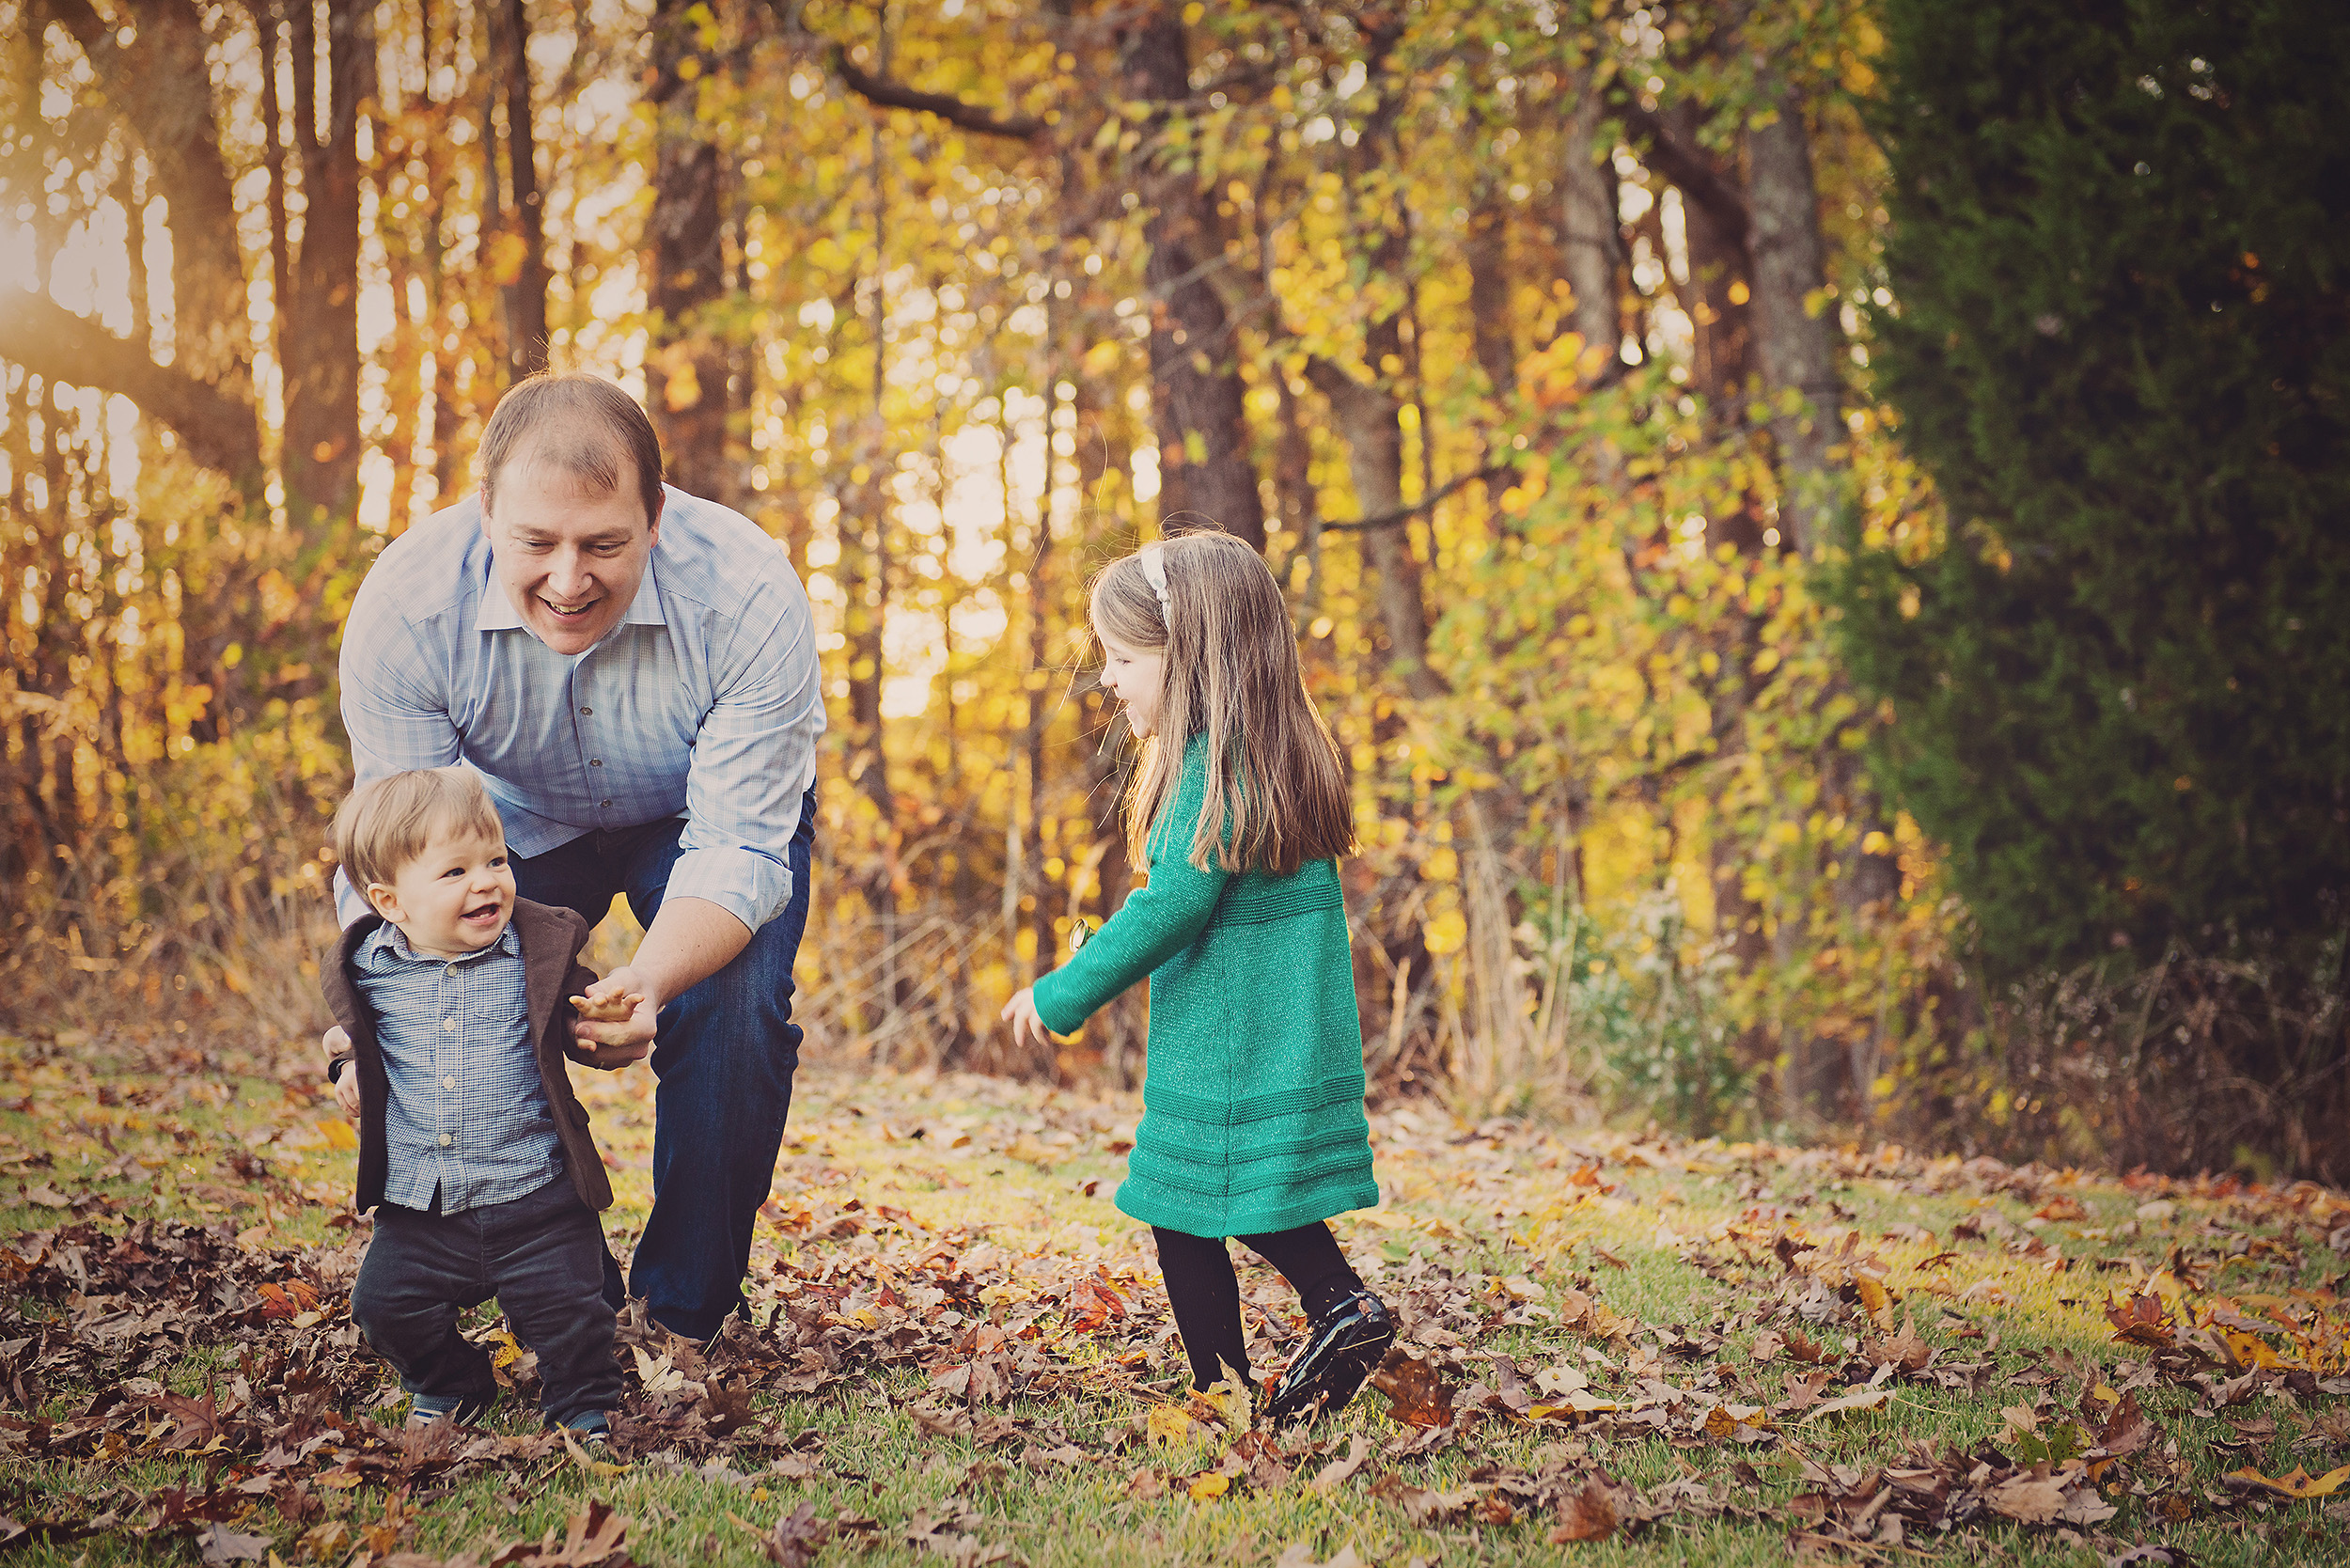 fall-family-photography-sessions-cary-16.jpg